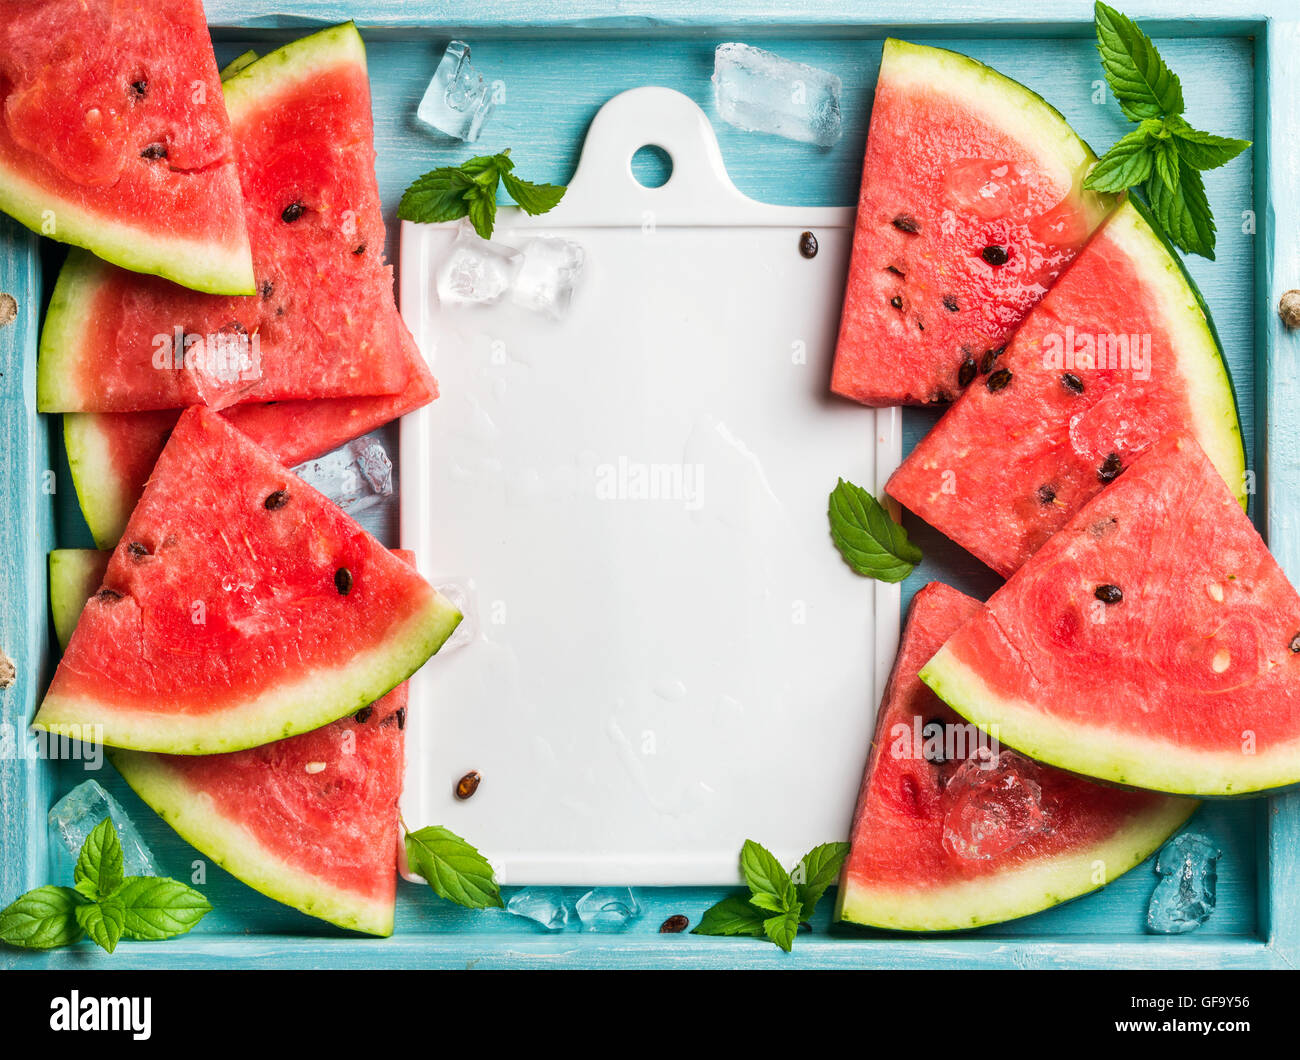 Watermelon slices with ice cubes and mint leaves on blue wooden background, white ceramic board in center. Top view, - Stock Image